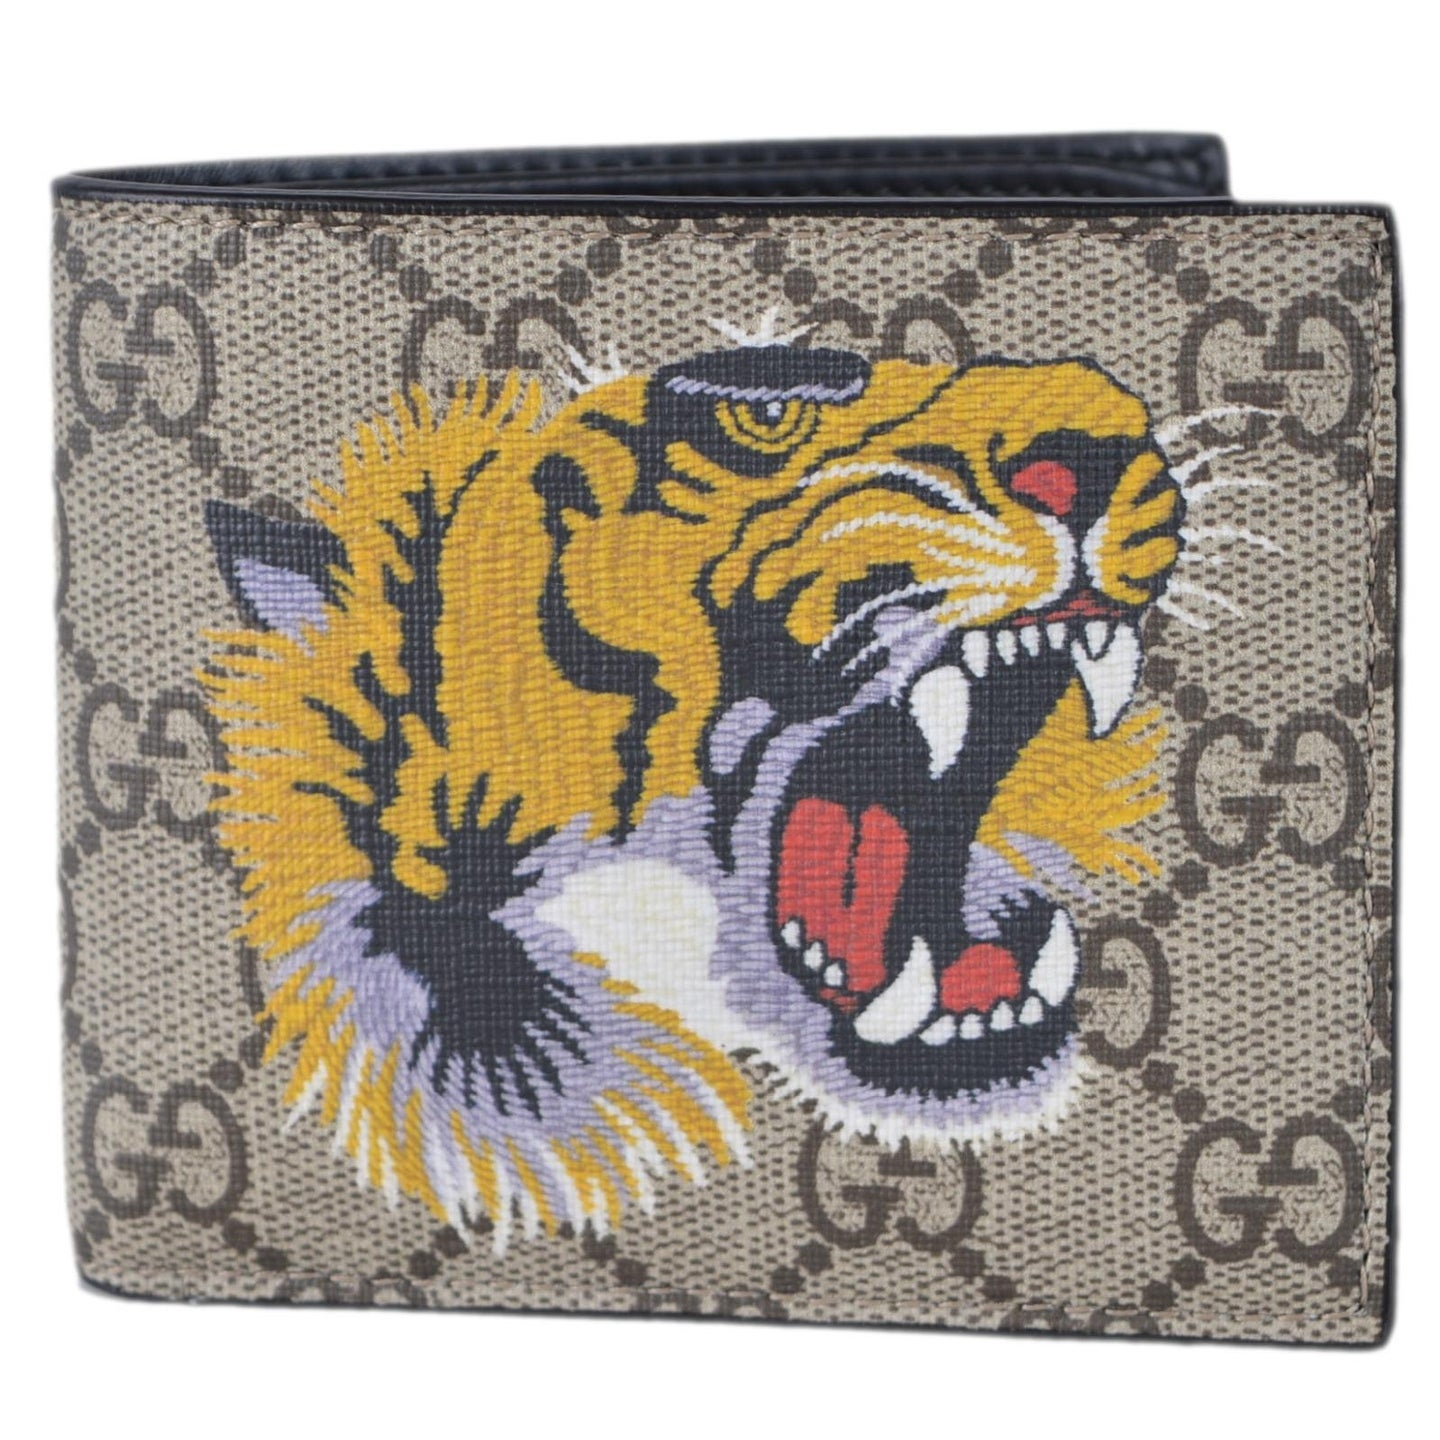 33c0cc4fa1e8 Shop Gucci Men's Beige GG Supreme Canvas Angry Bengal Tiger Bifold Wallet -  measures 4.25 x 3.5 inches - Free Shipping Today - Overstock - 25435884